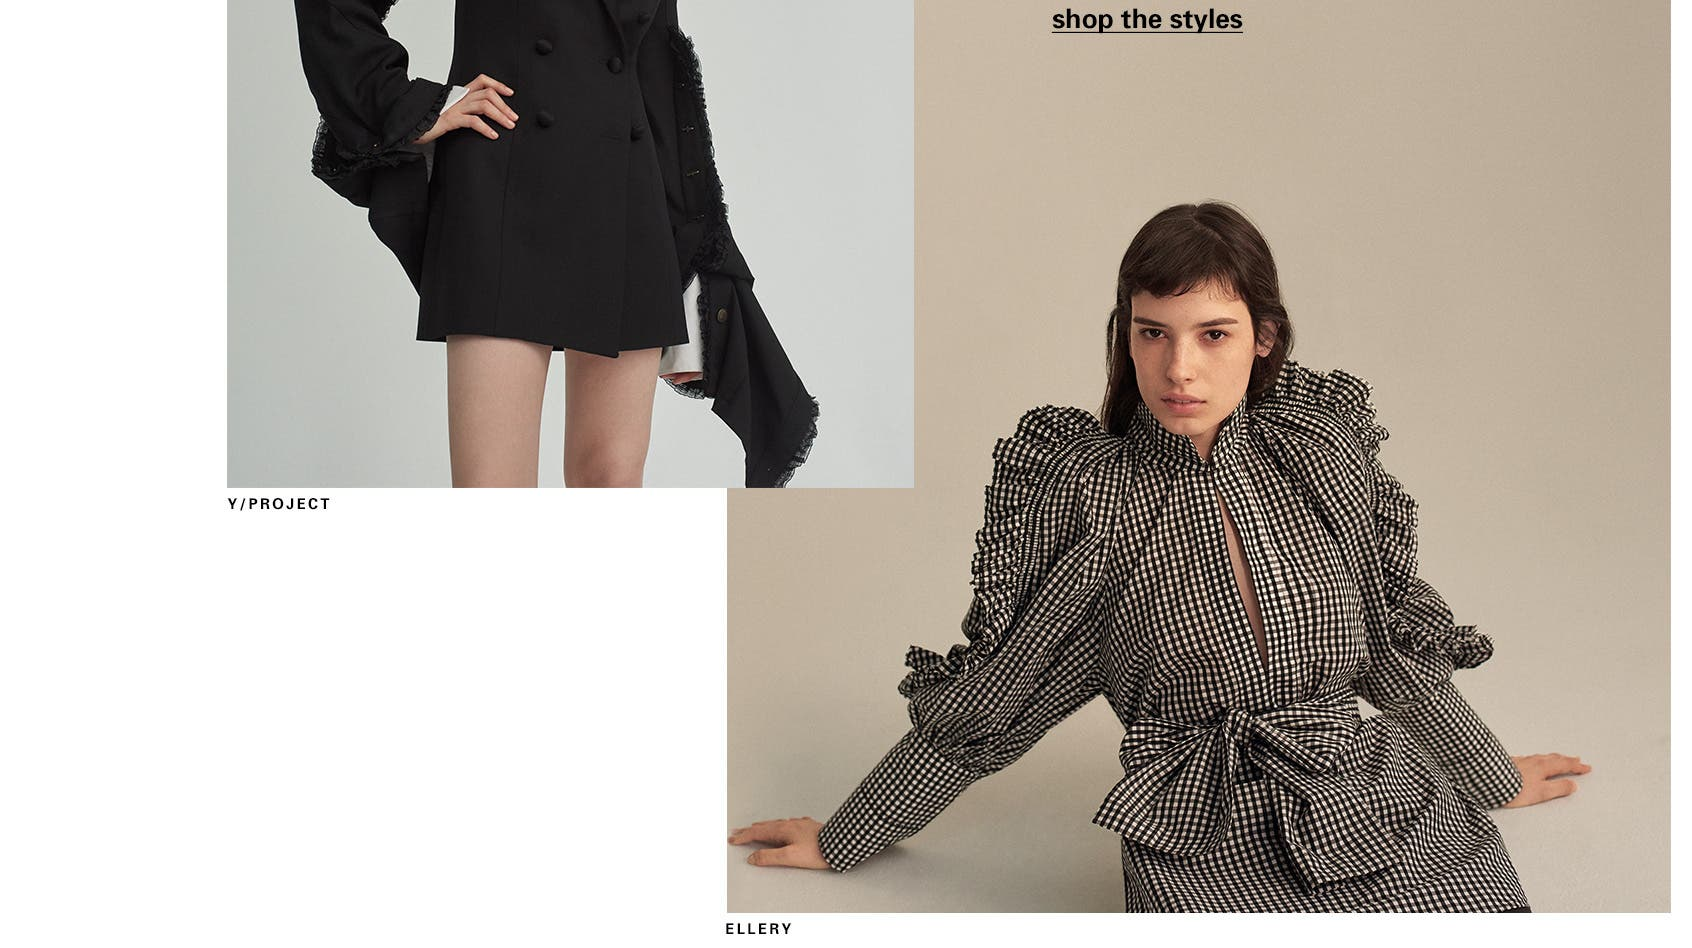 Spring styles from emerging designers like Y/PROJECT and Ellery.